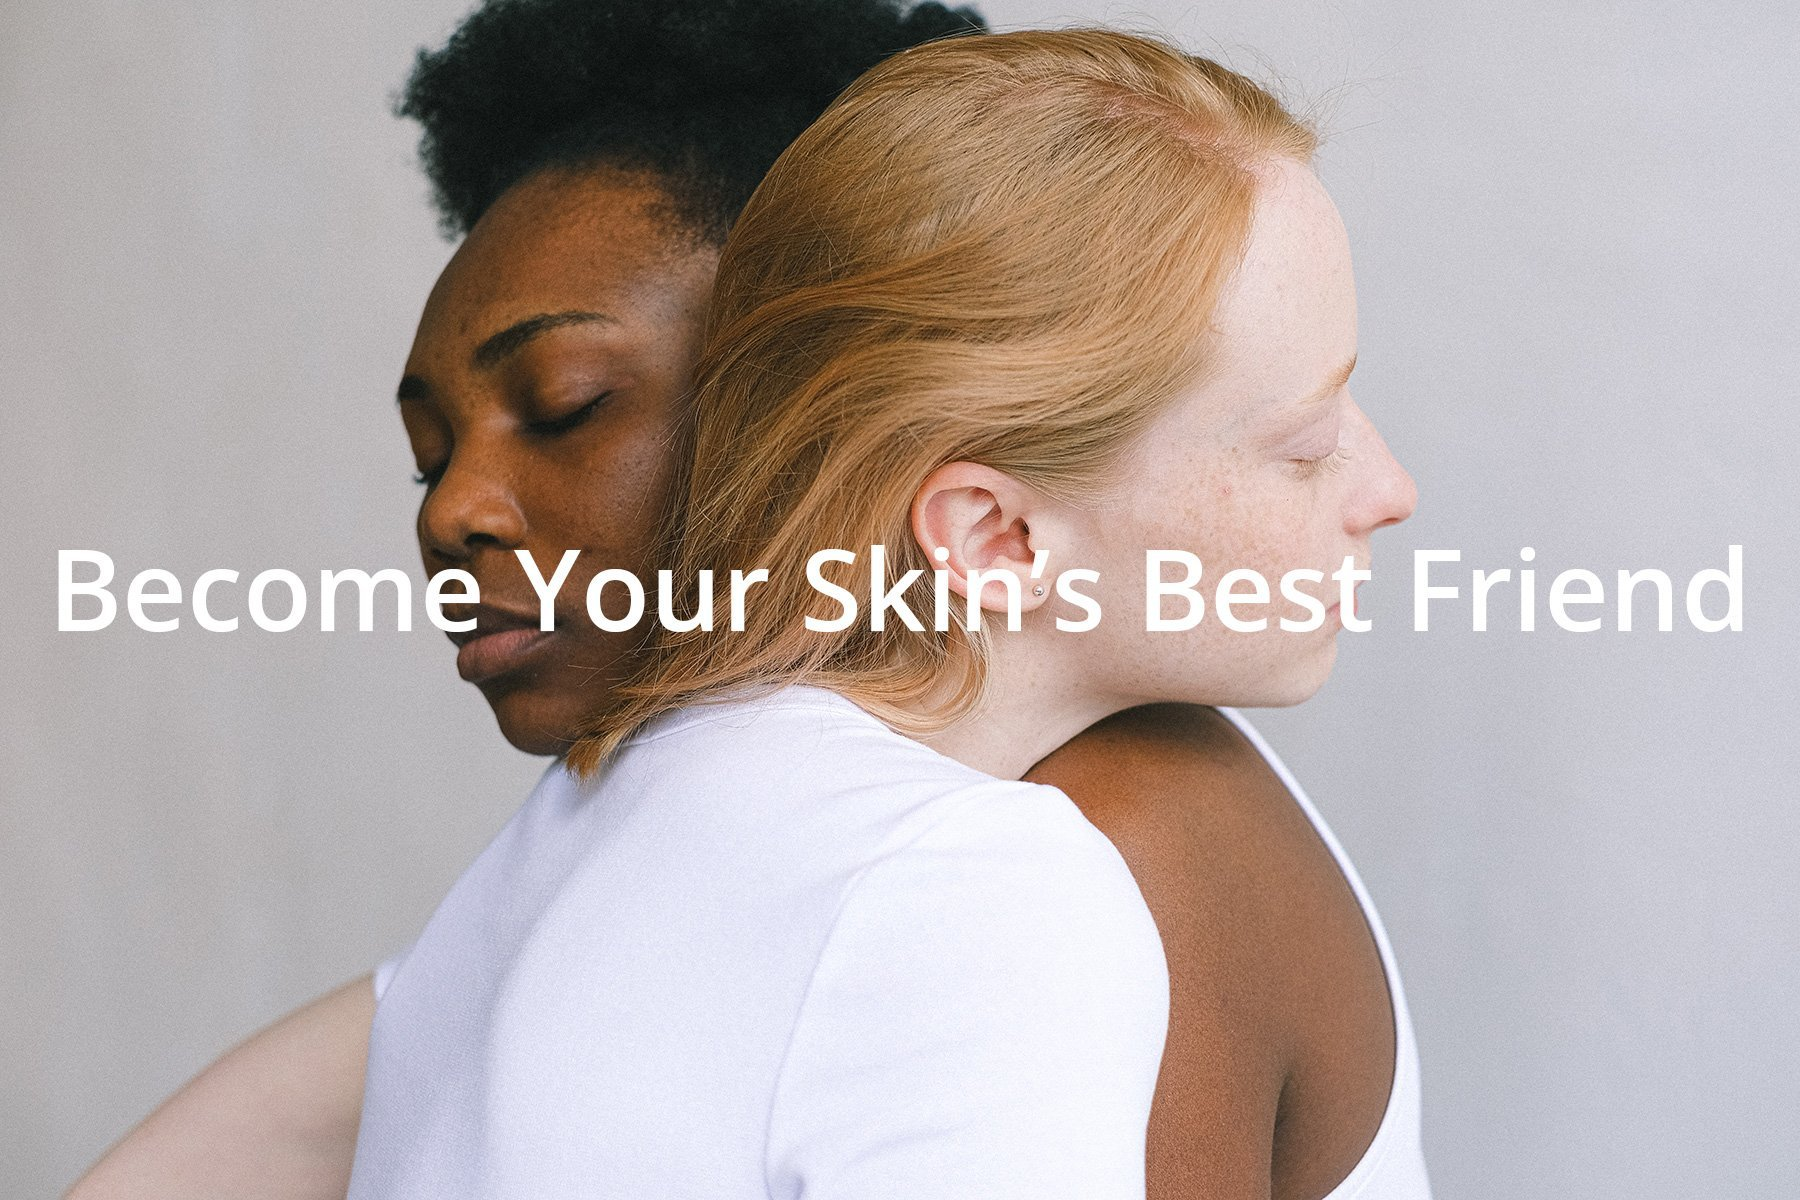 become your skin's best friend